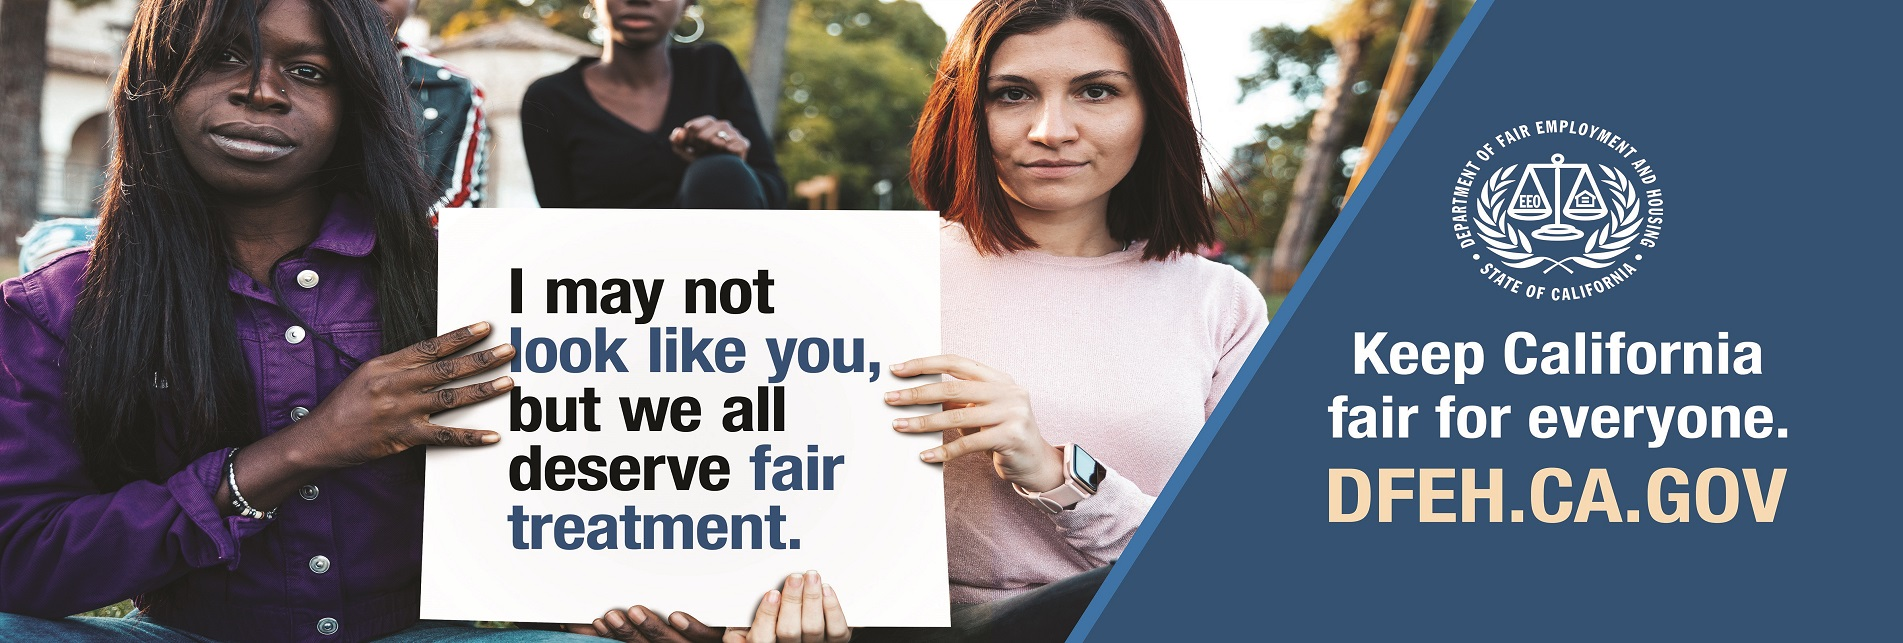 I may not look like you but we all deserve fair treatment. Keep California fair for everyone.